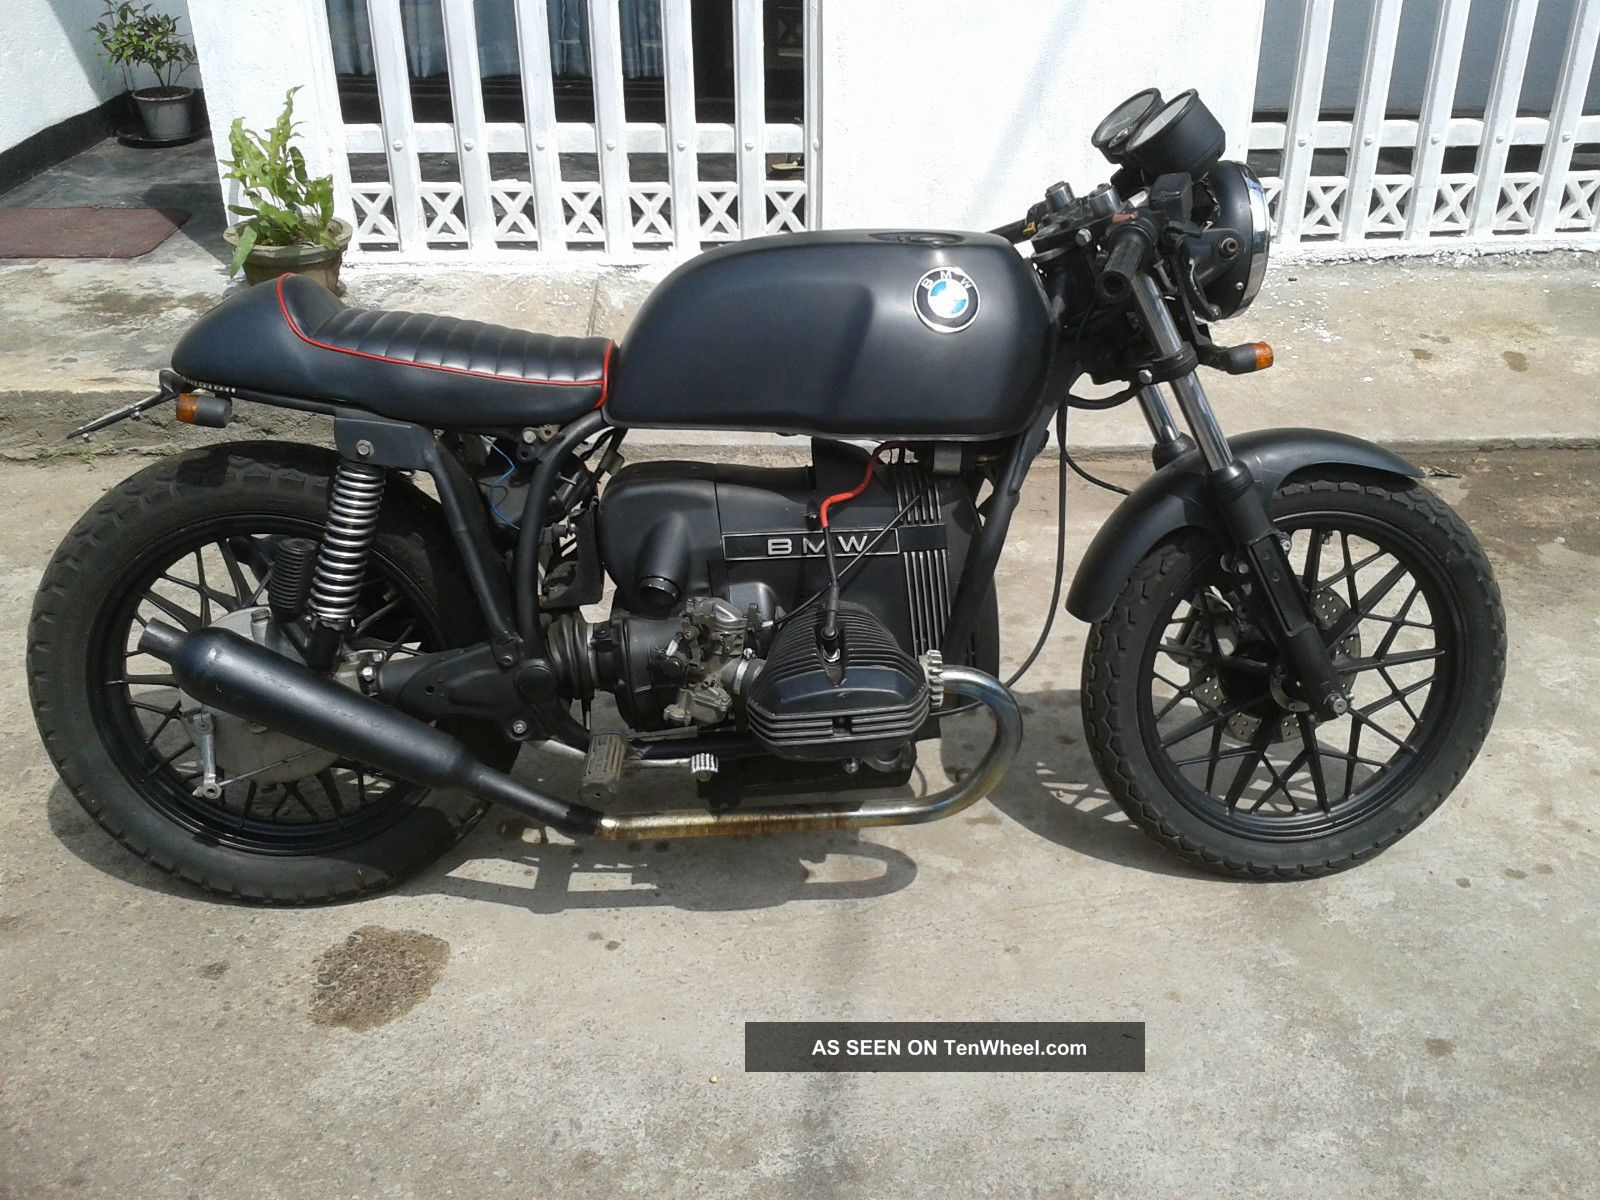 1974 bmw r45 cafe racer 500cc triumph bsa norton ducati. Black Bedroom Furniture Sets. Home Design Ideas